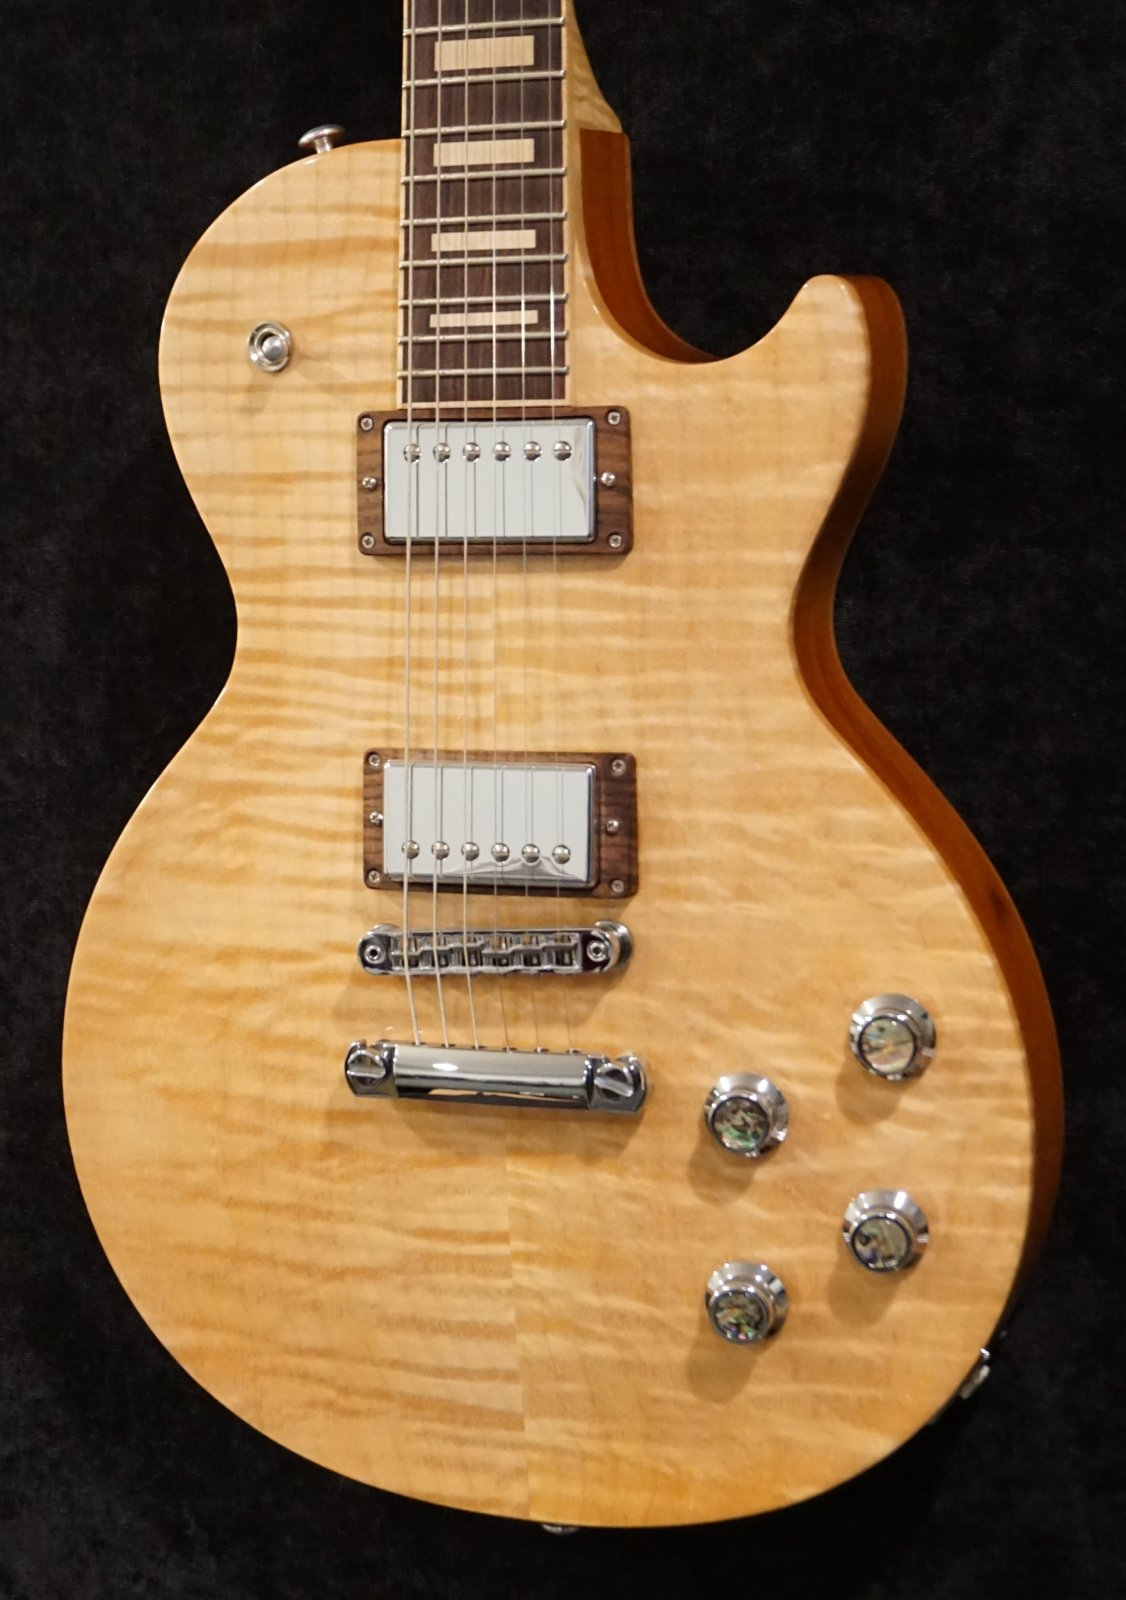 Gibson Les Paul All Wood Series (1 of 150 Made)